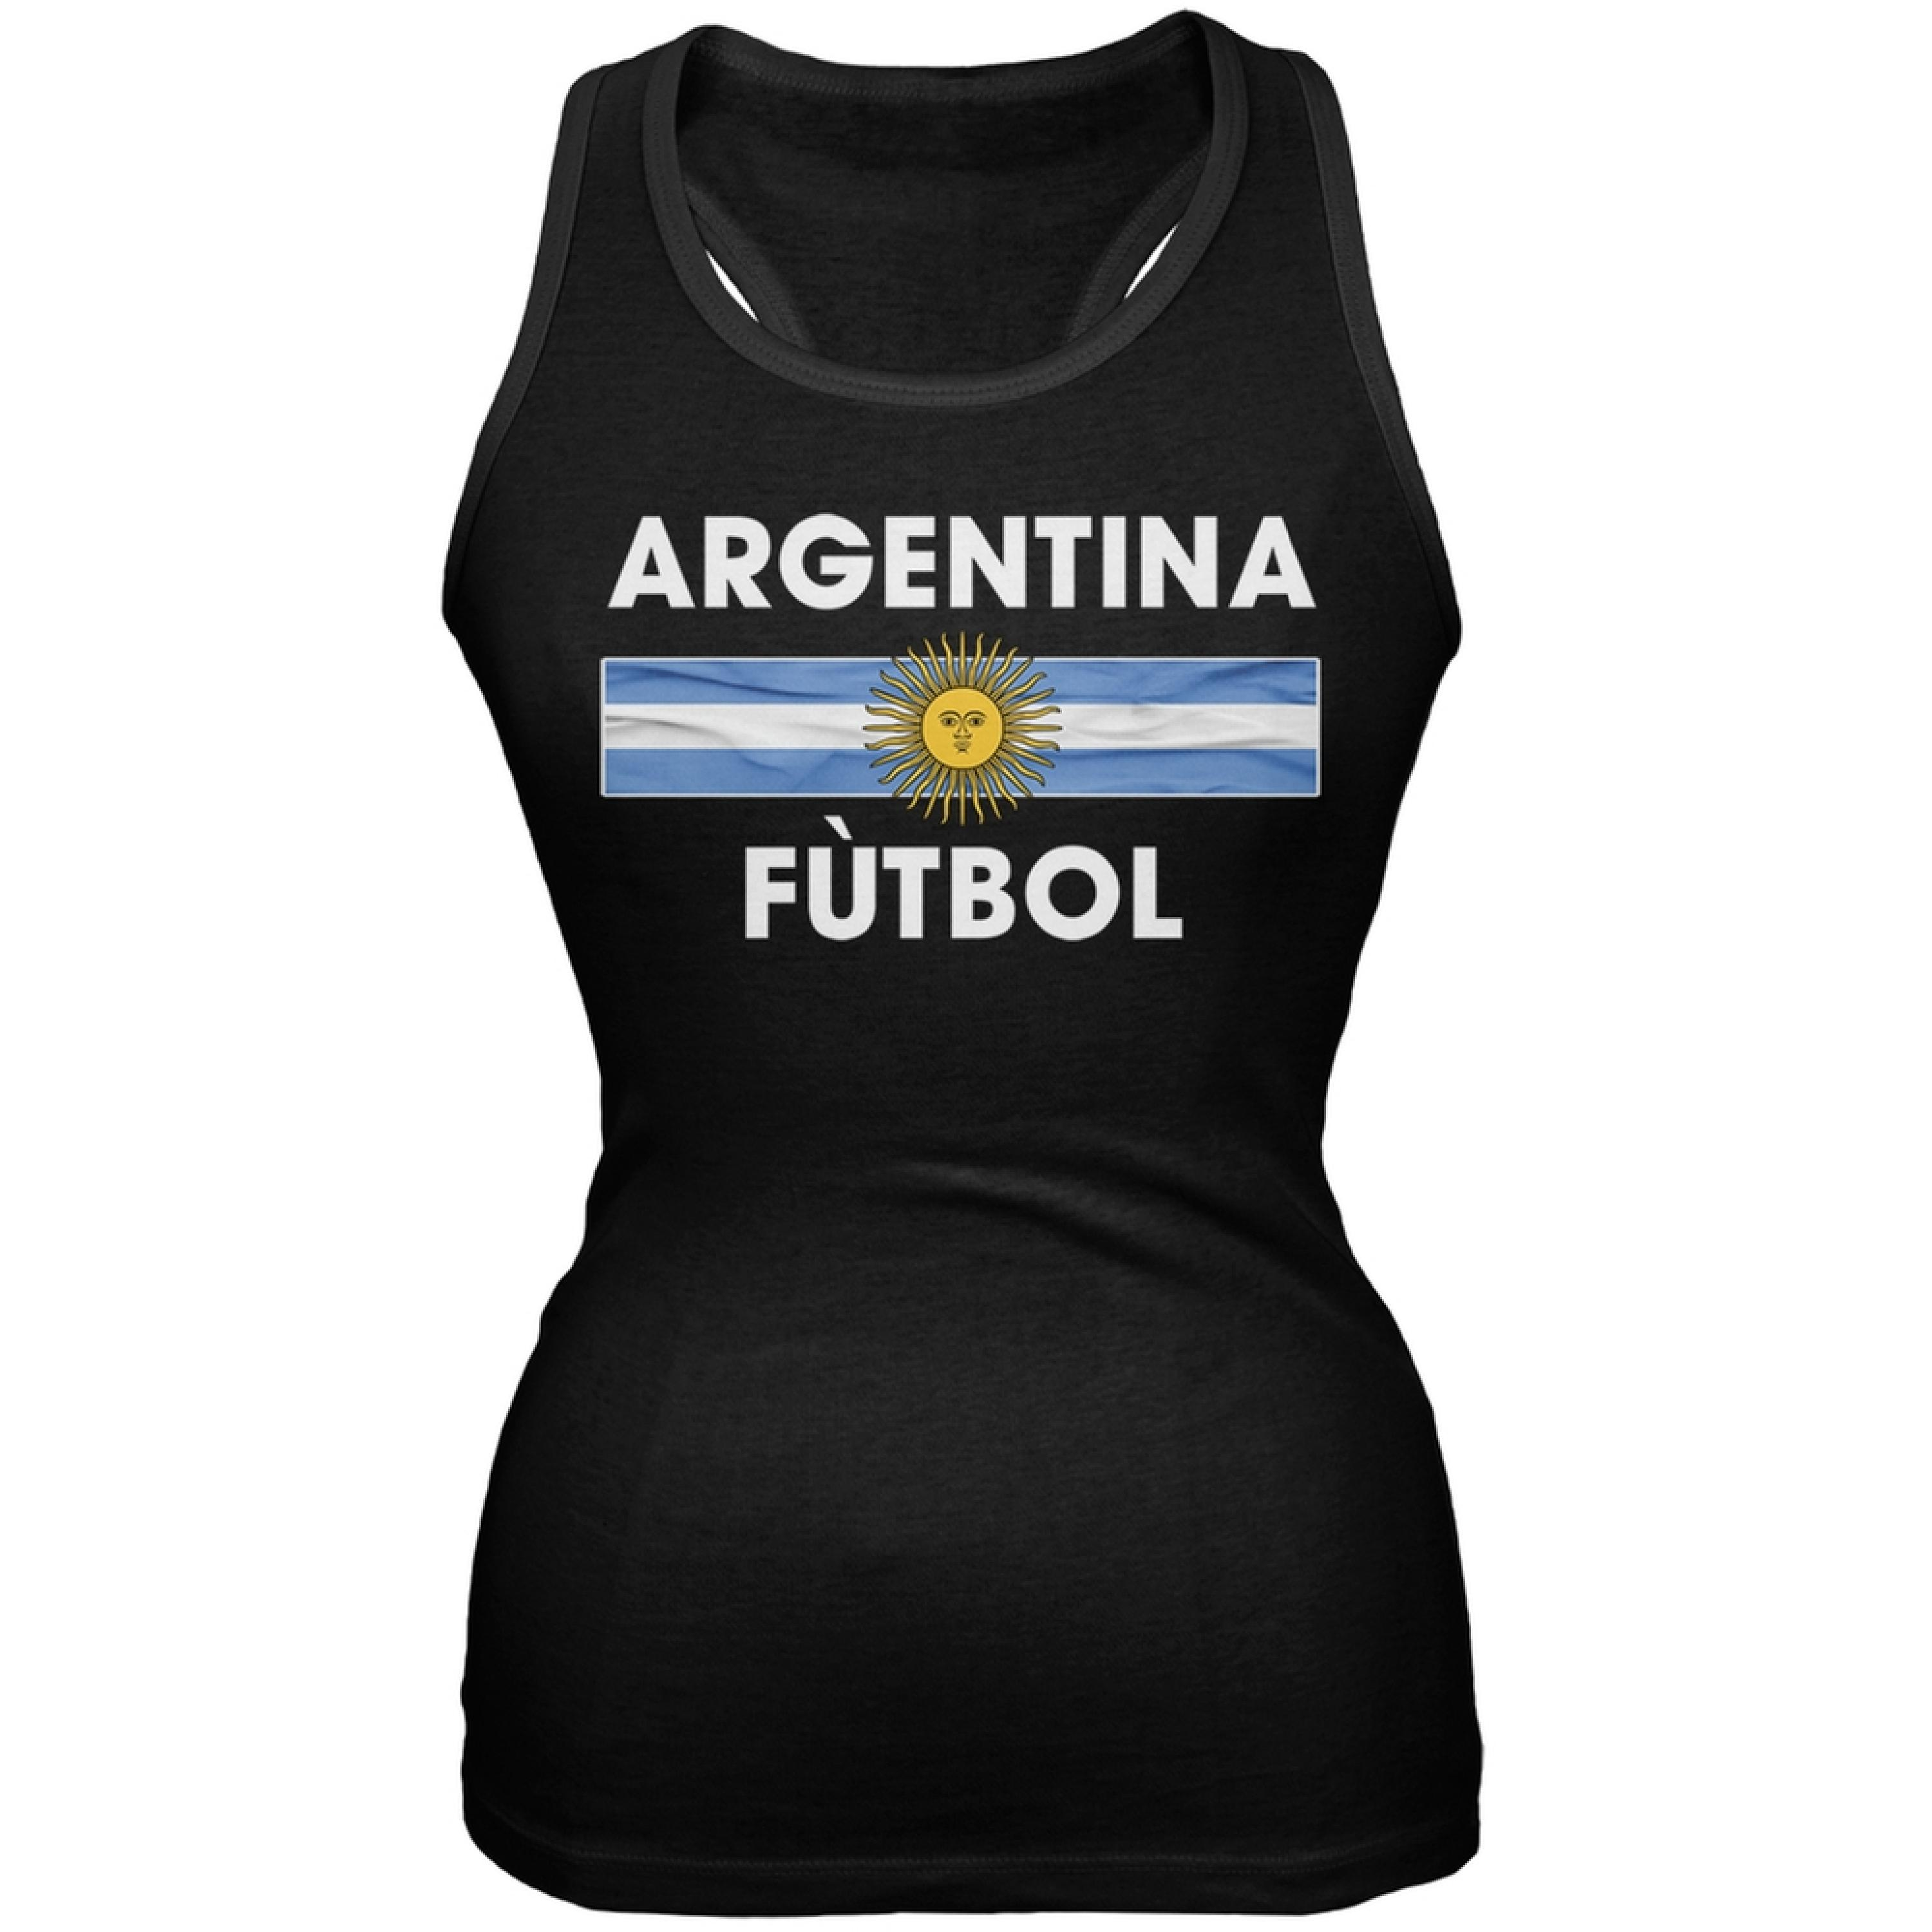 World Cup Argentina Crest Black Soccer Juniors Tank Top